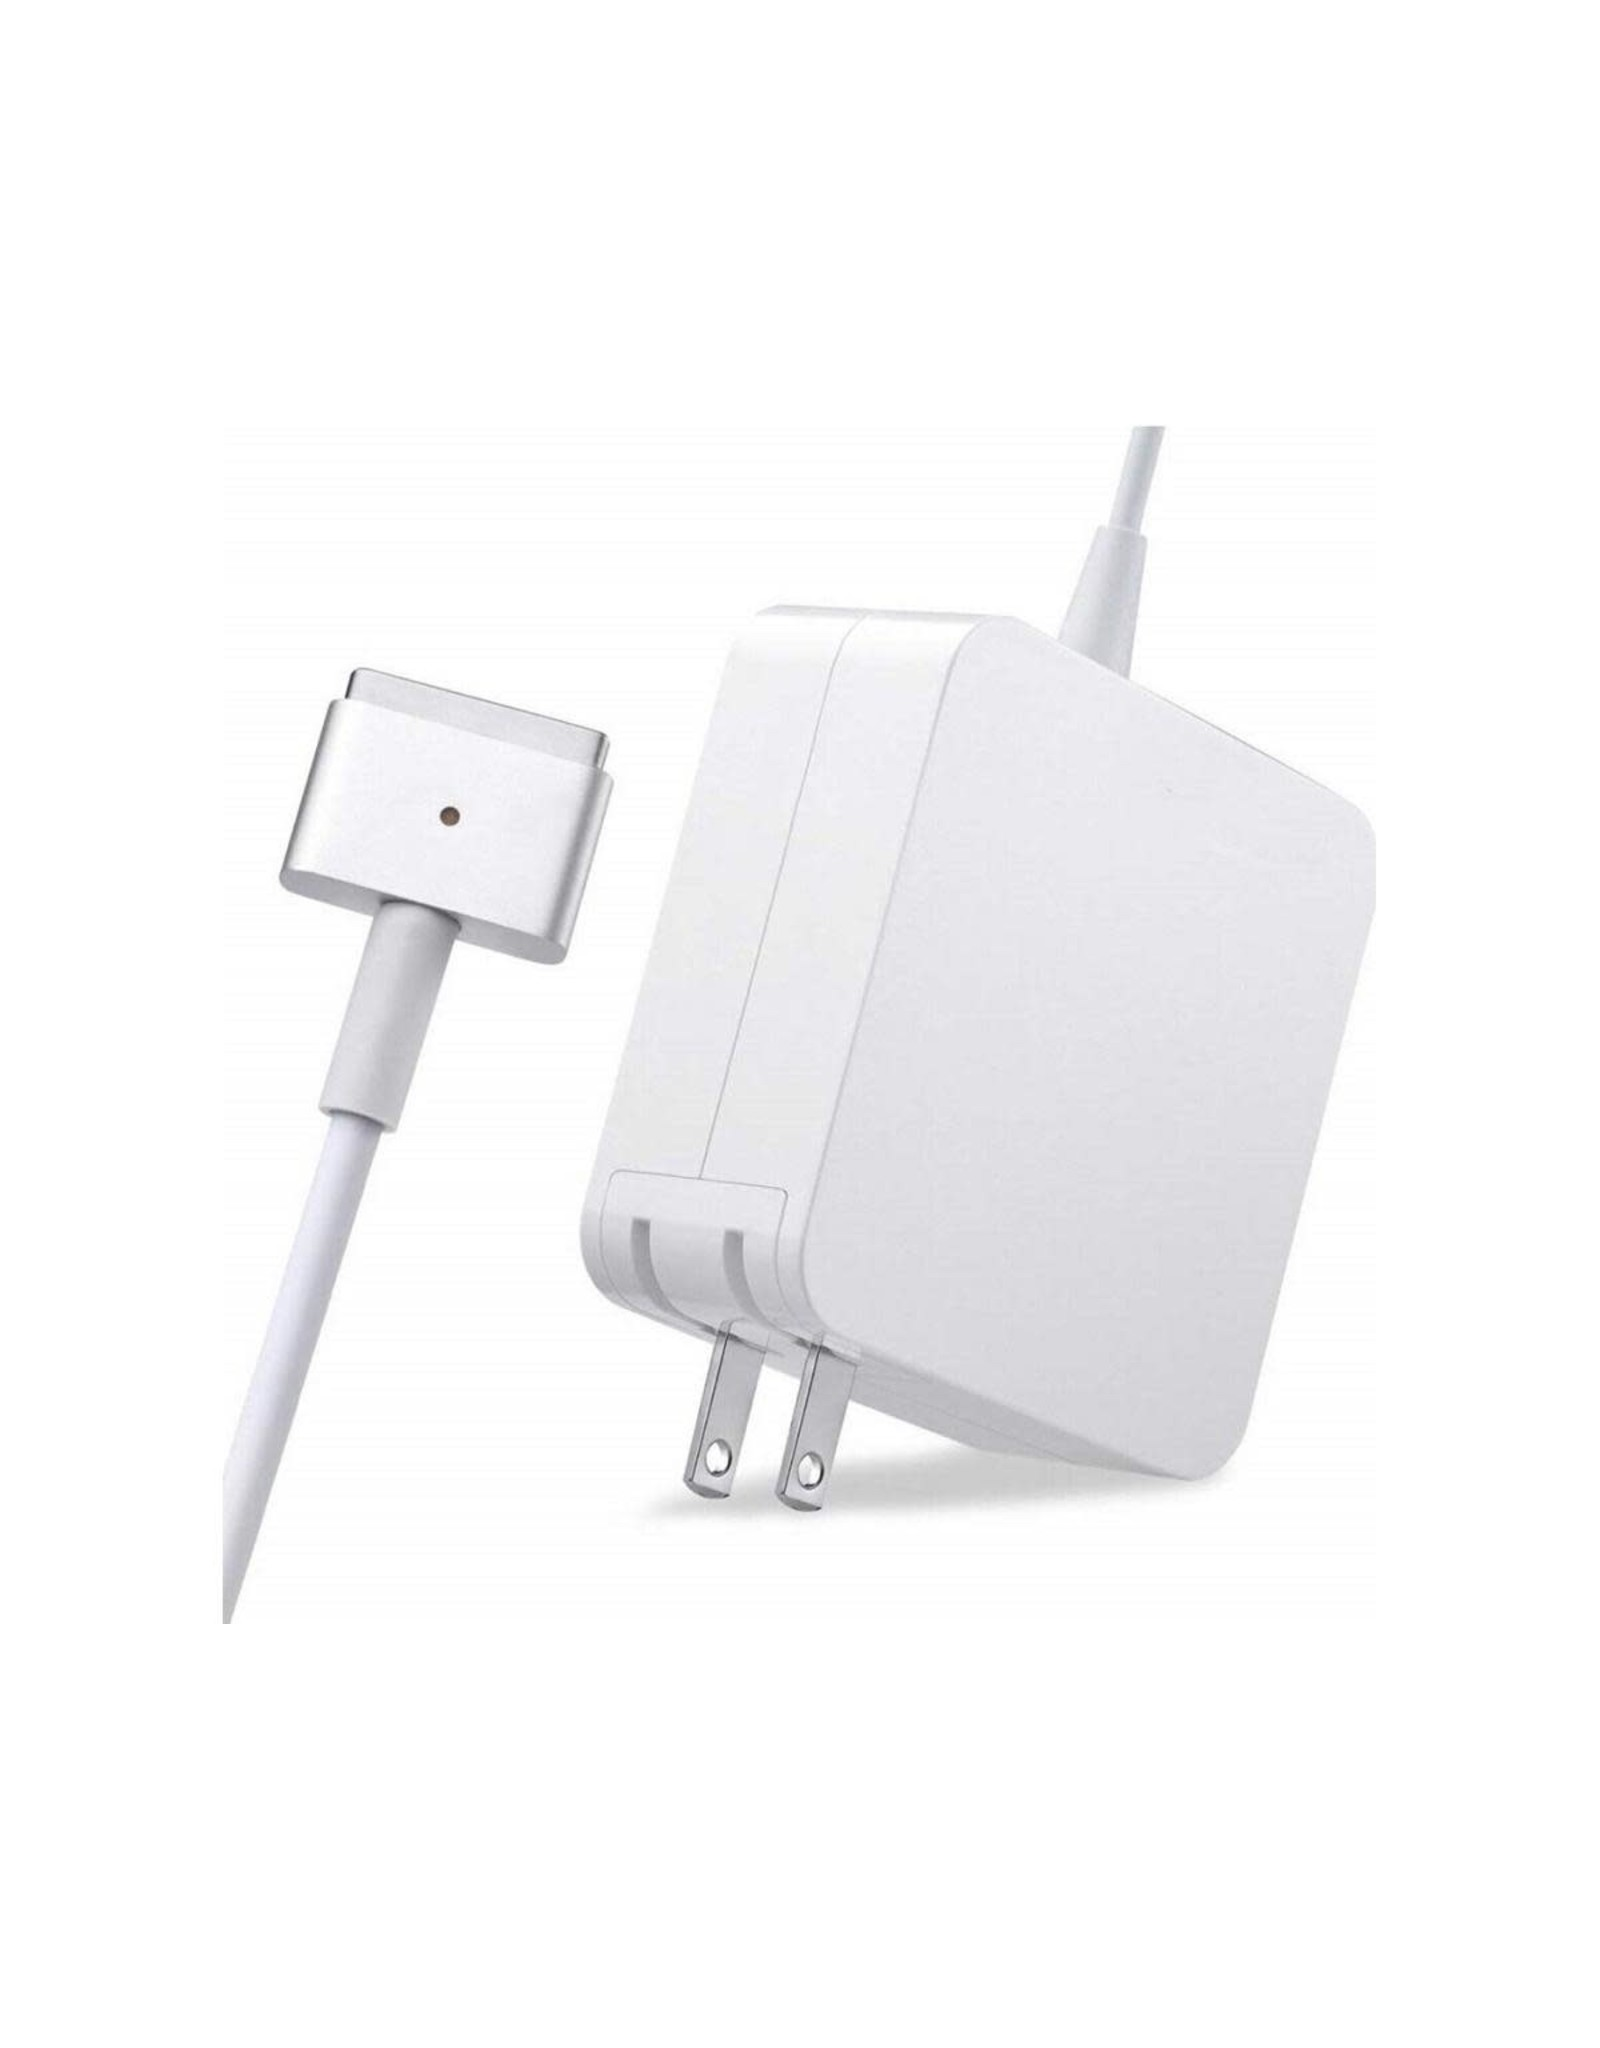 Axiom Axiom, 85-Watt MagSafe 2 Power Adapter for Apple